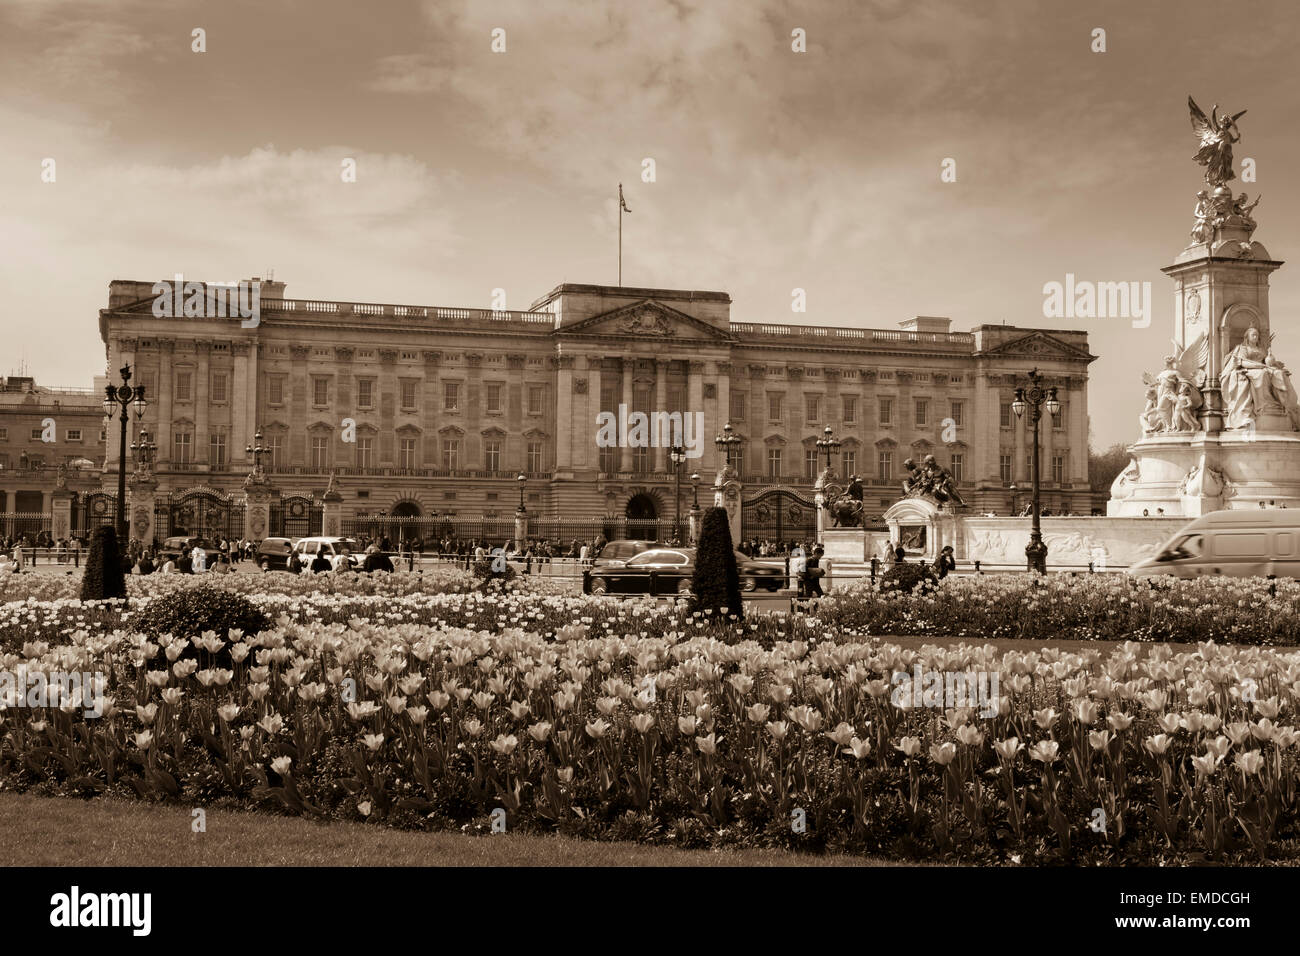 A sepia Landscape view of Buckingham Palace in the Spring time with an antique sepia tone look City of Westminster - Stock Image